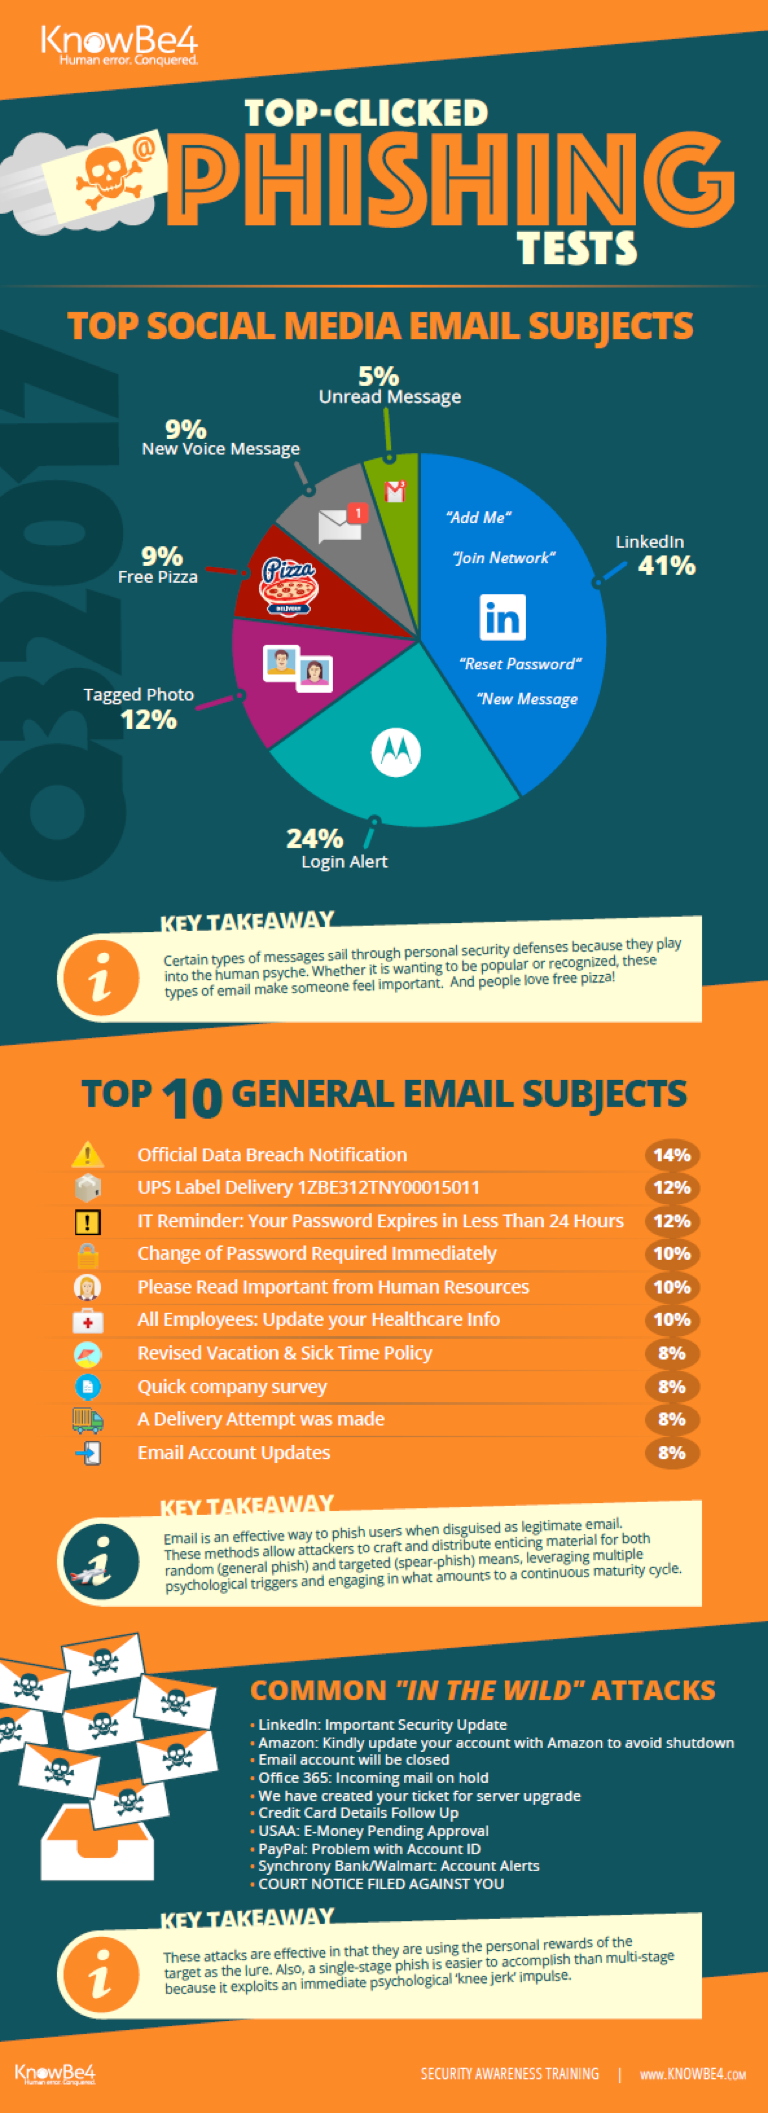 Q3-2017-Phishing-Email-Subjects-Infographic